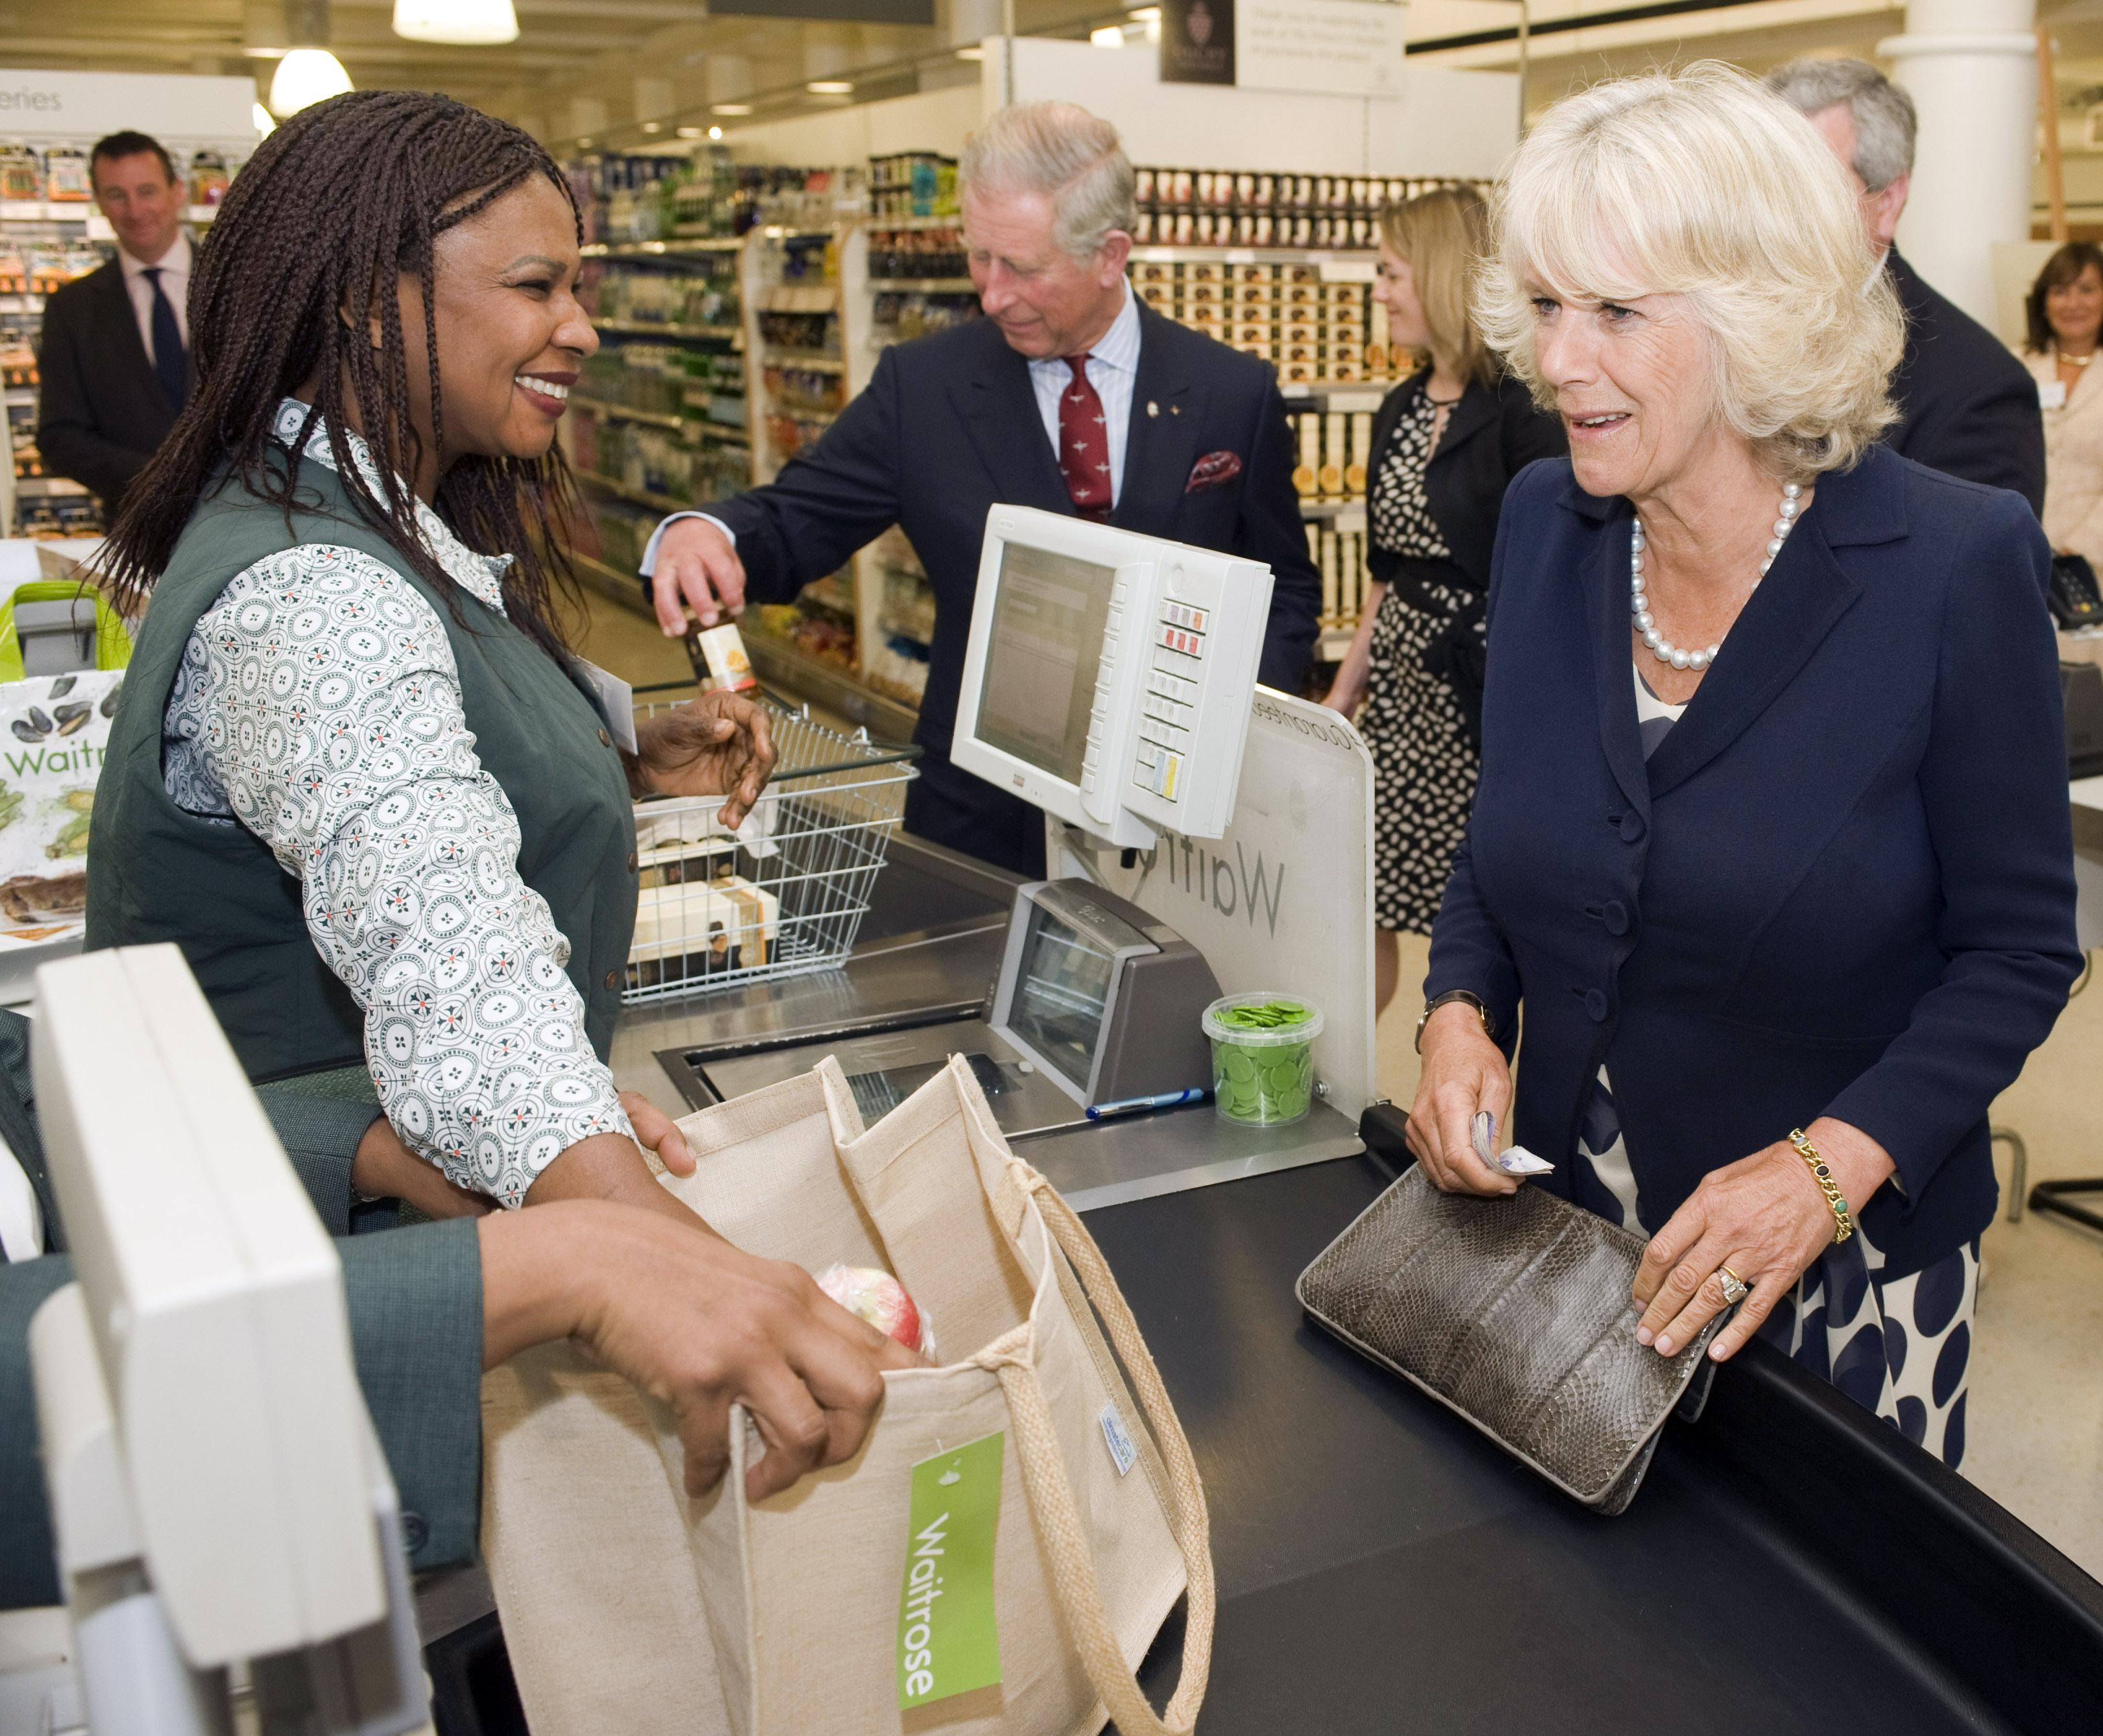 Camilla Parker Bowles and Prince Charles checking out at grocery store